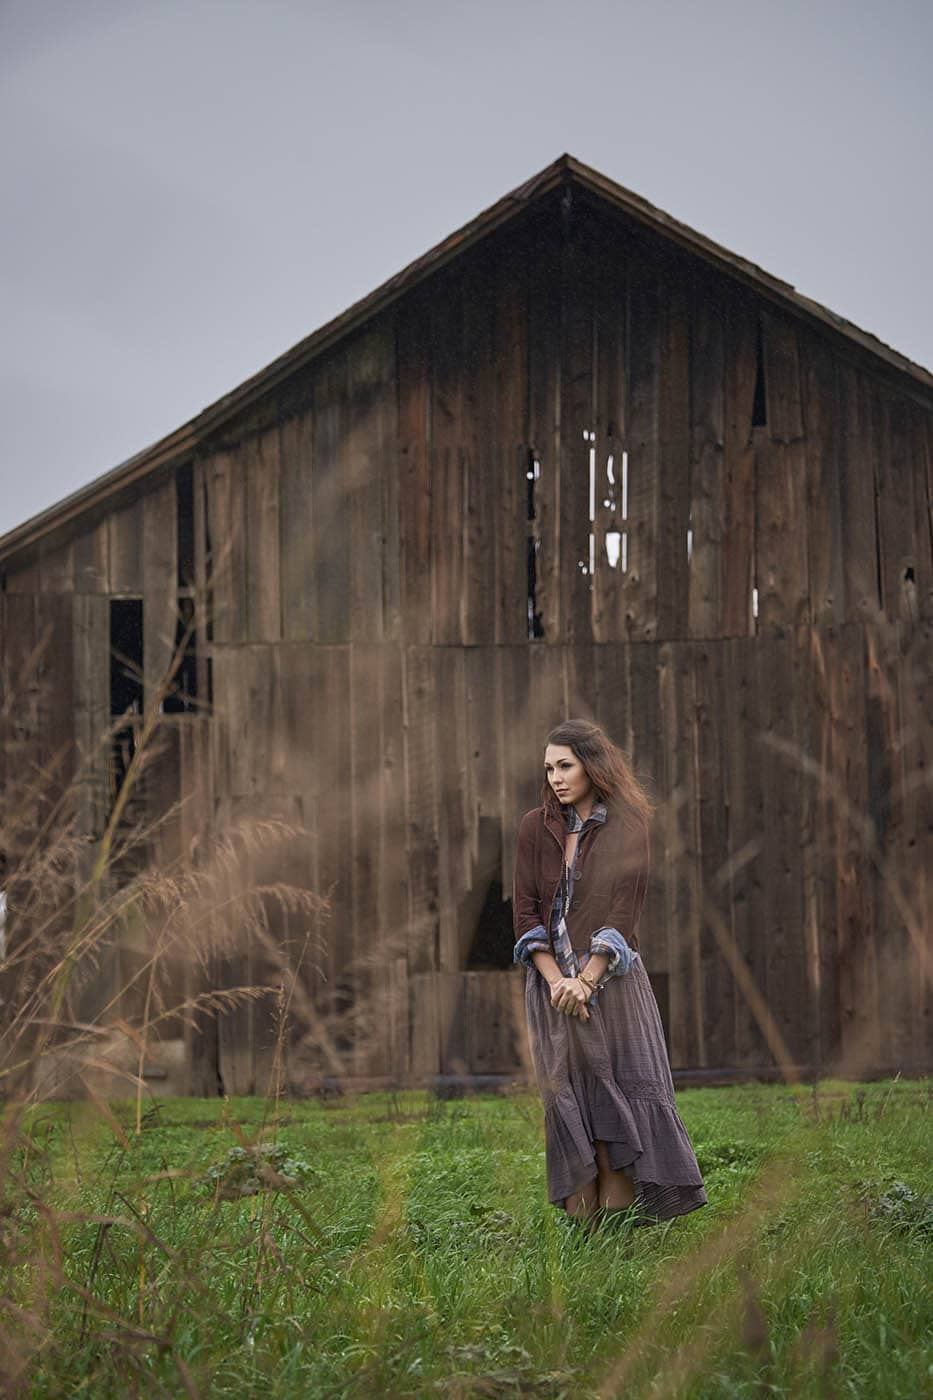 A young woman wearing a dress and rubber boots walking through a field on a small farm on a cloudy winter day.